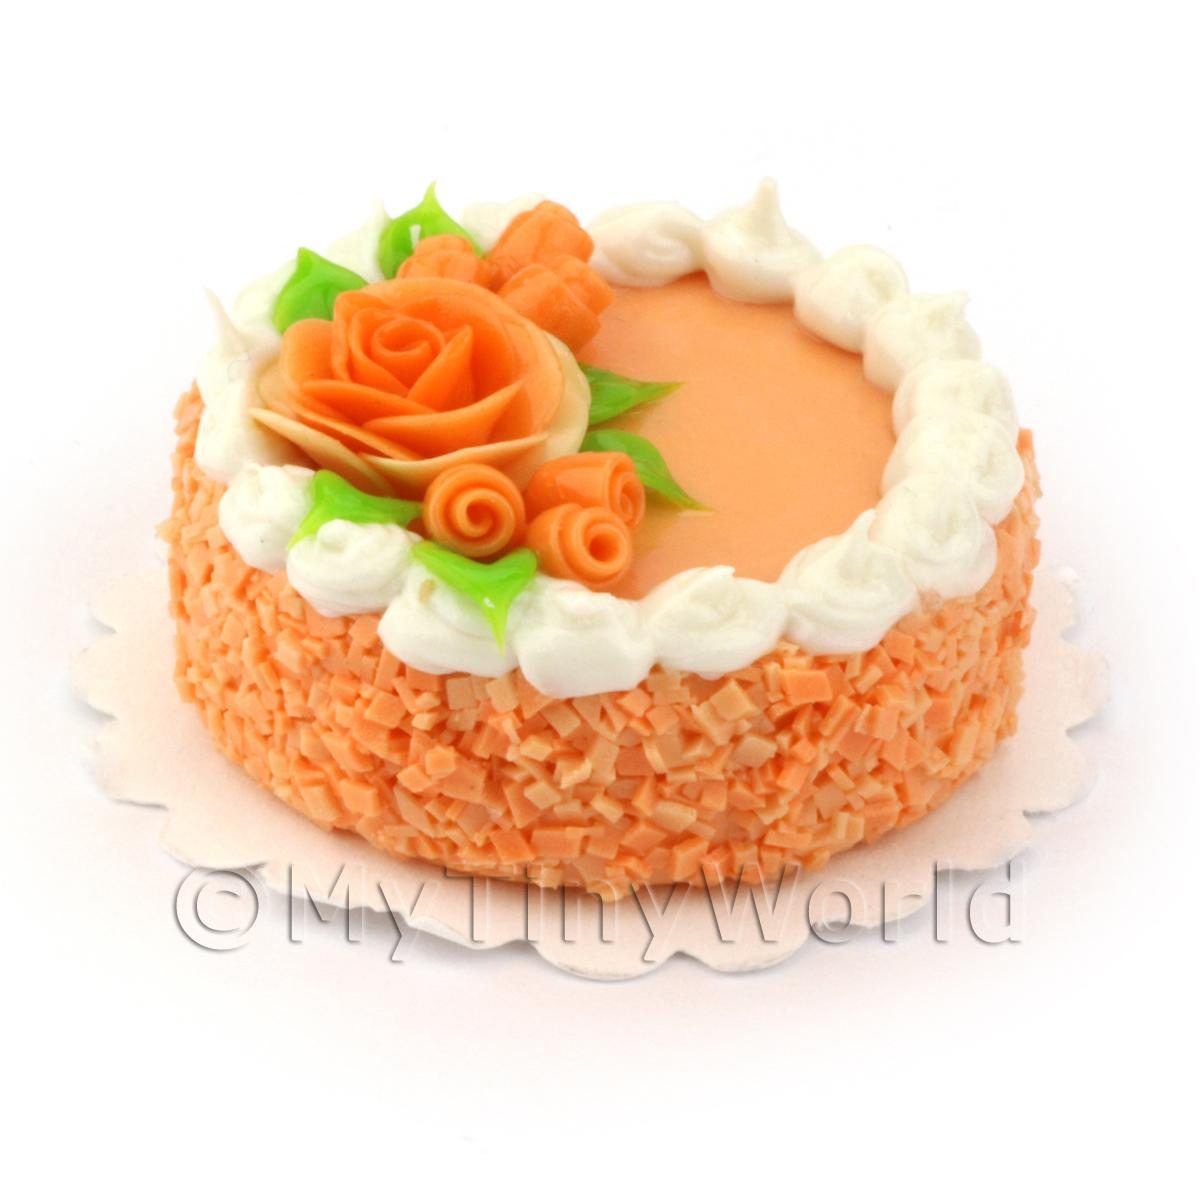 Dolls House Miniature Peach Cake With Orange Roses